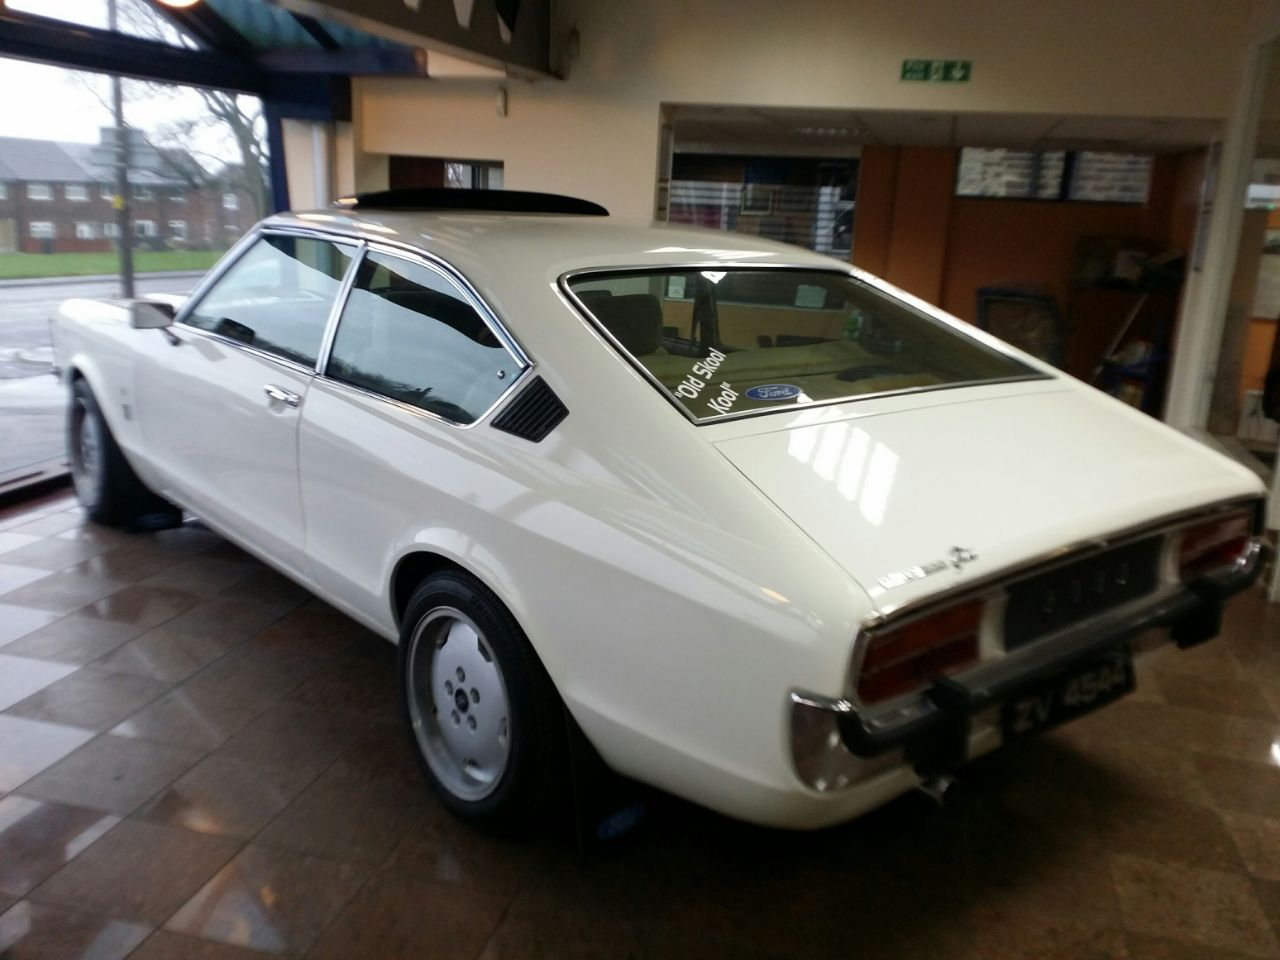 Used Ford Granada 1 for sale in Halifax, West Yorkshire ...